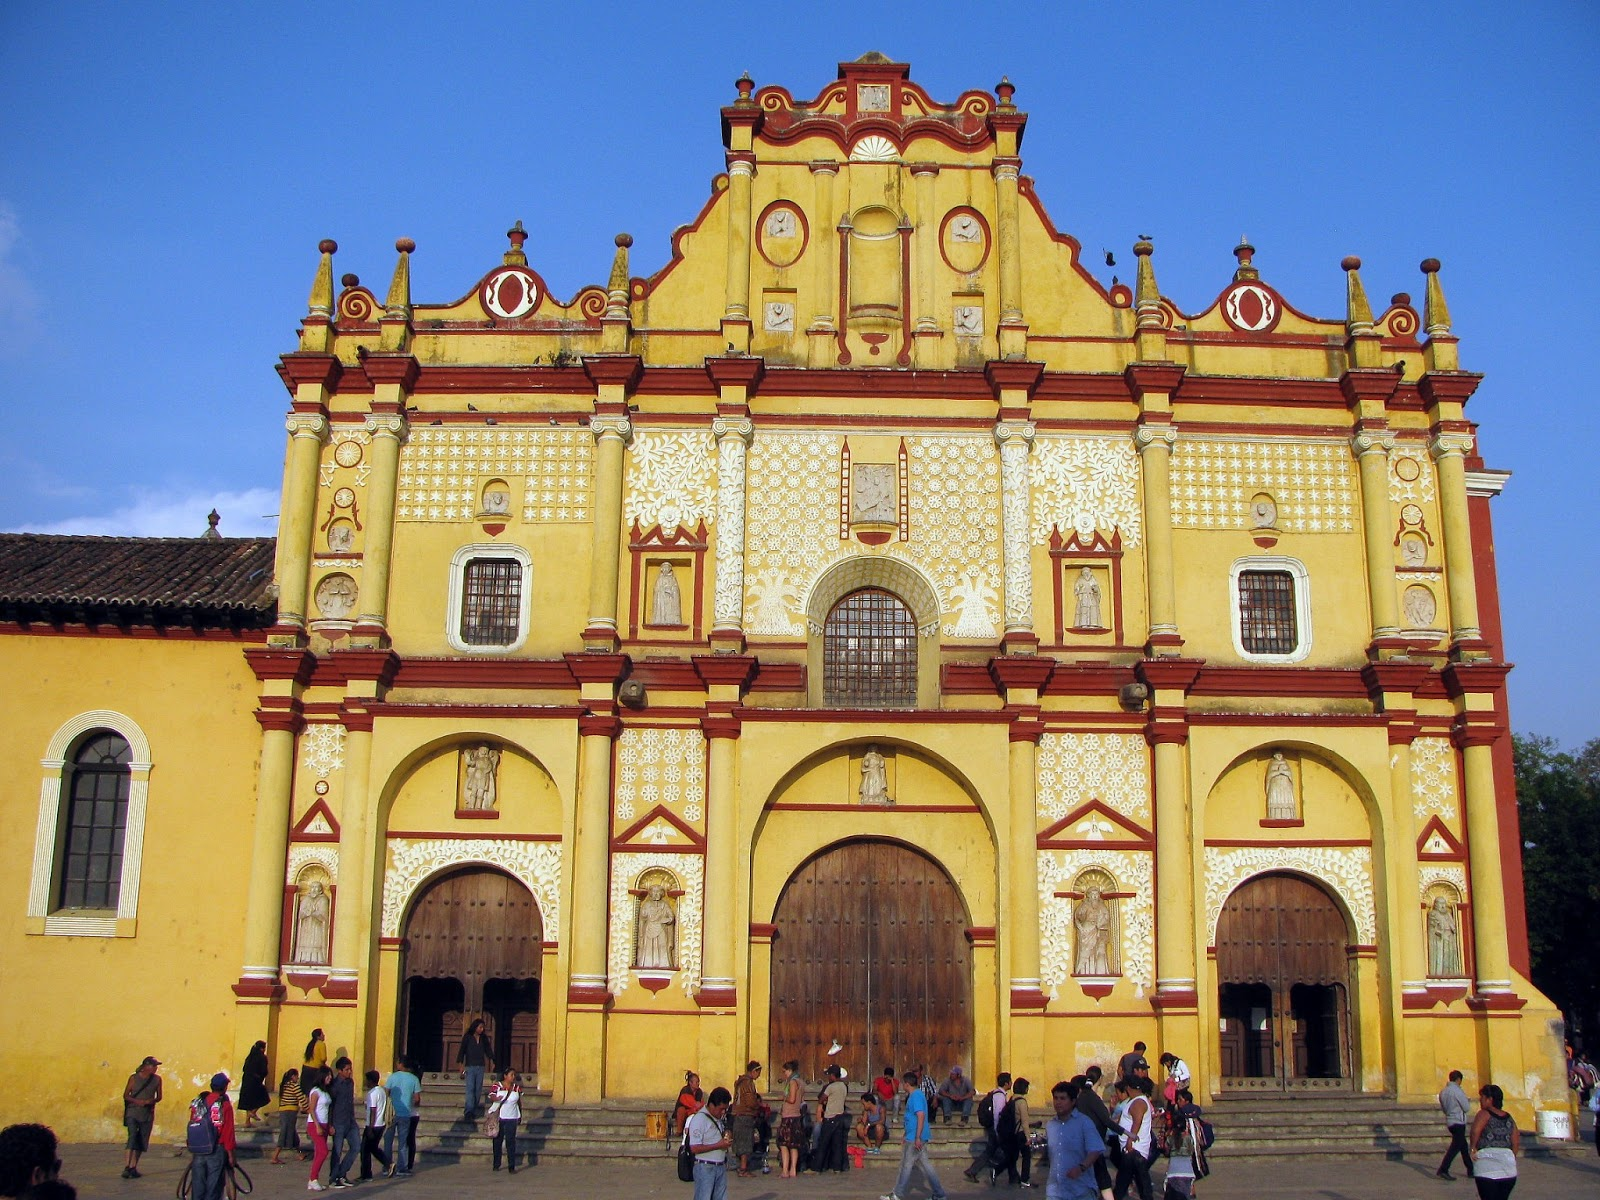 The Cathedral of San Cristobal